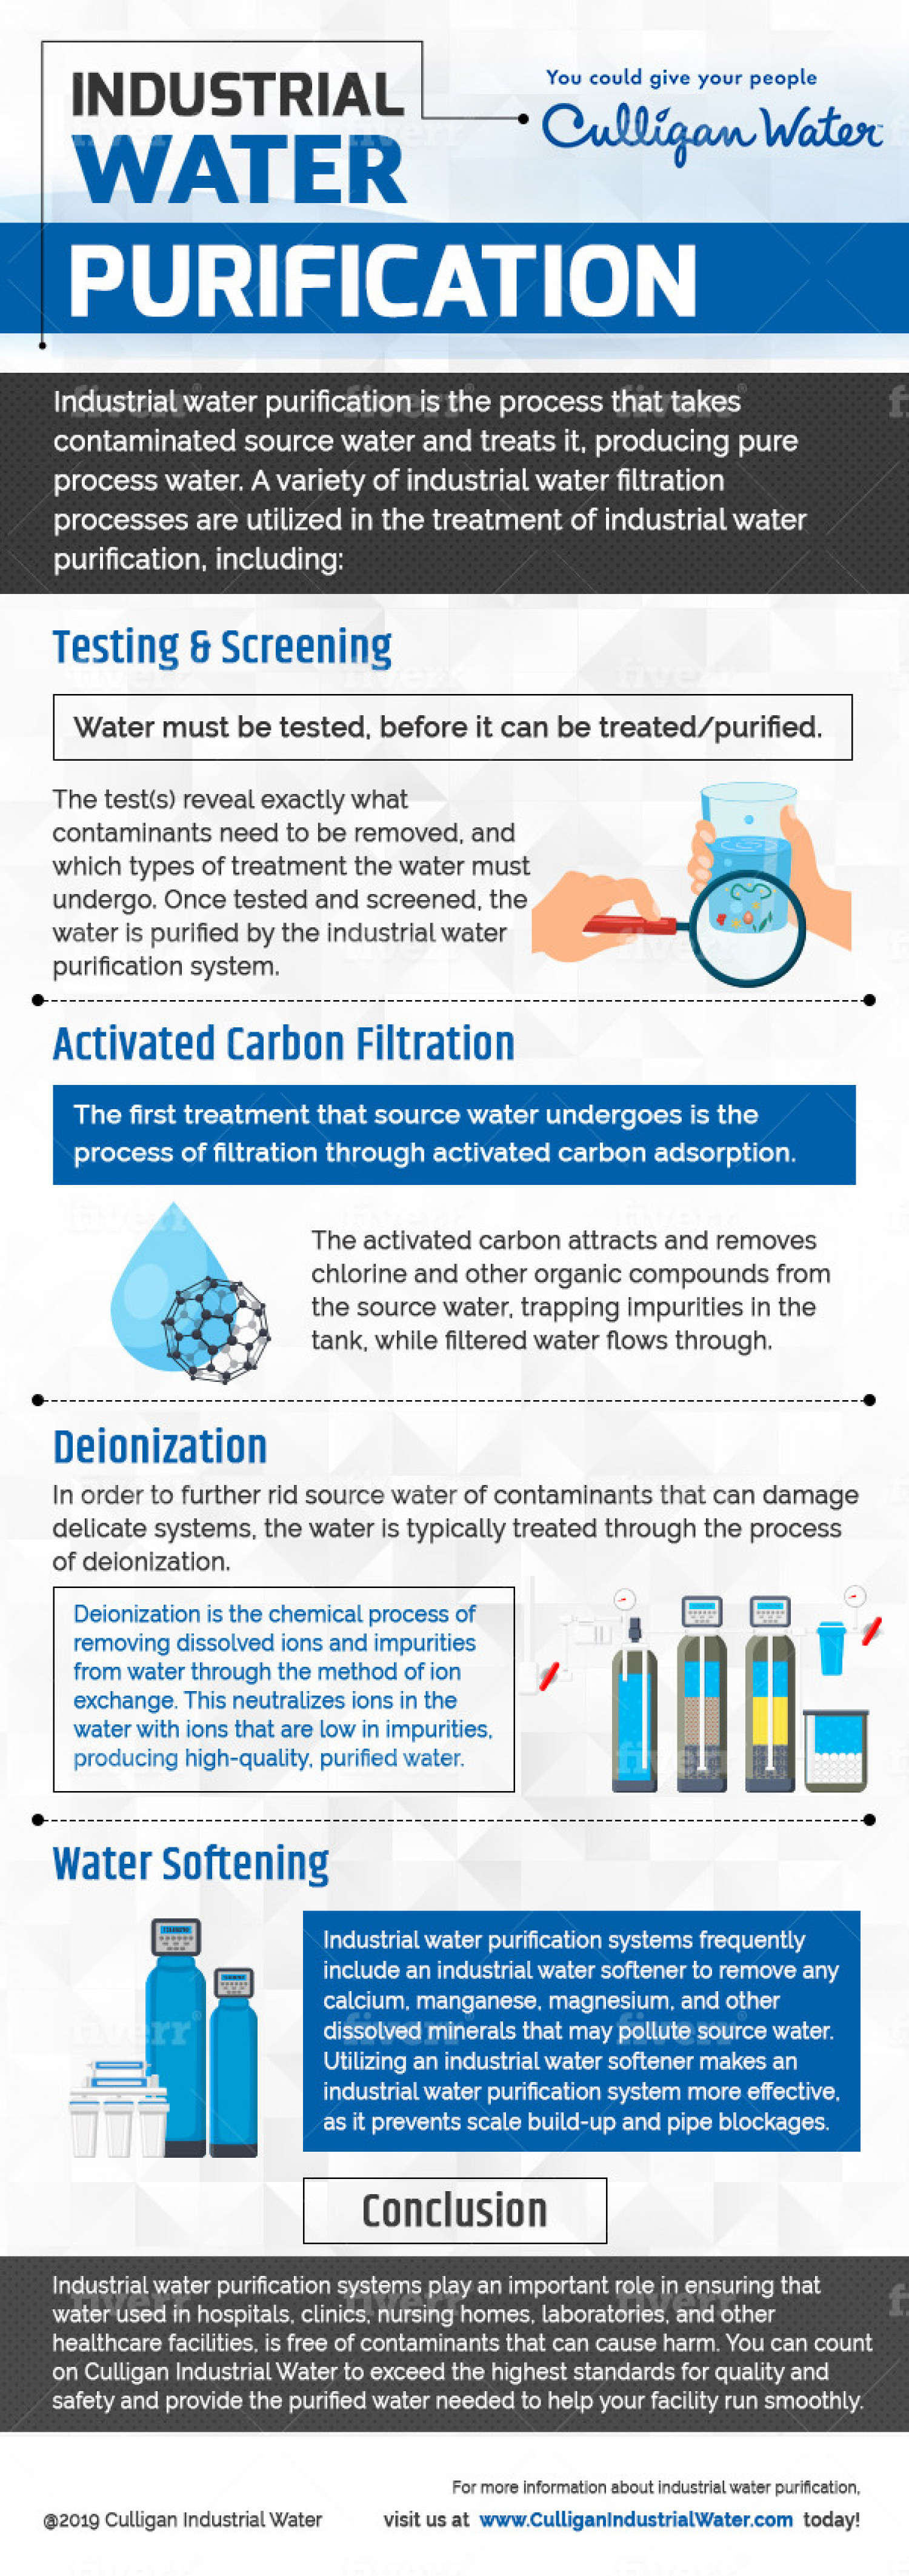 Industrial Water Purification Infographic